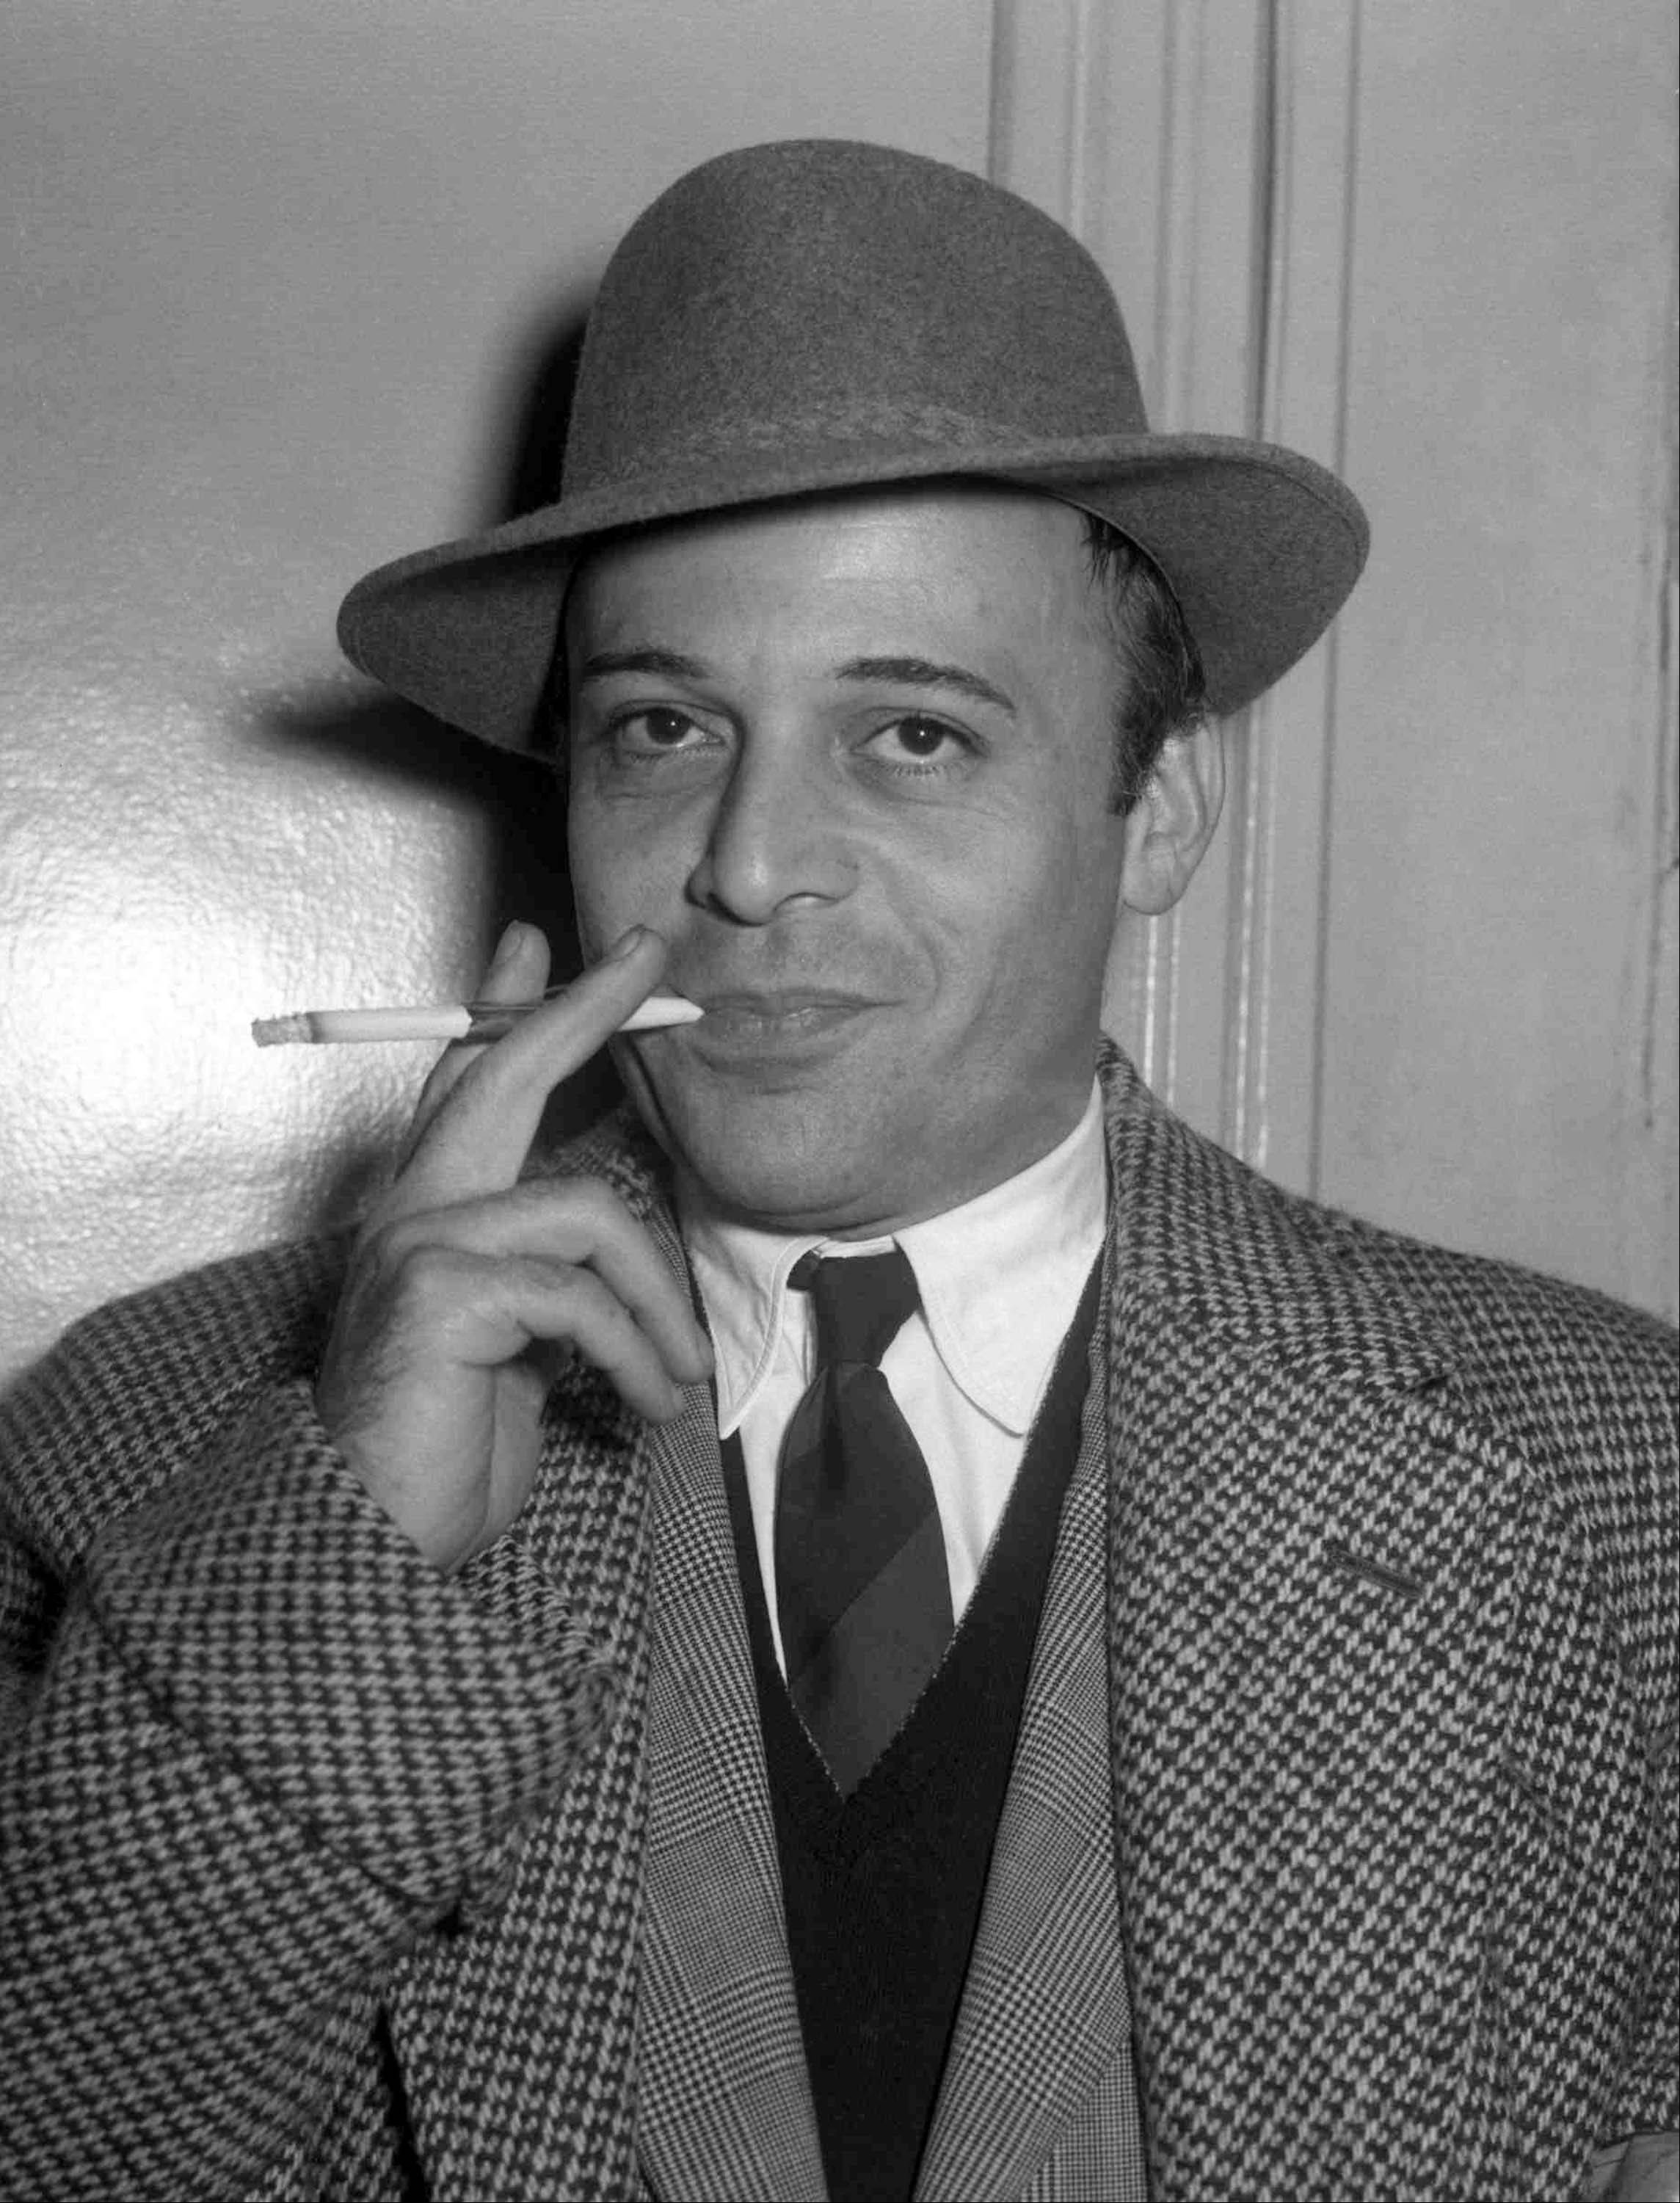 British actor Herbert Lom, who starred as Inspector Clouseau's boss in the Pink Panther movies, has died. He was 95.